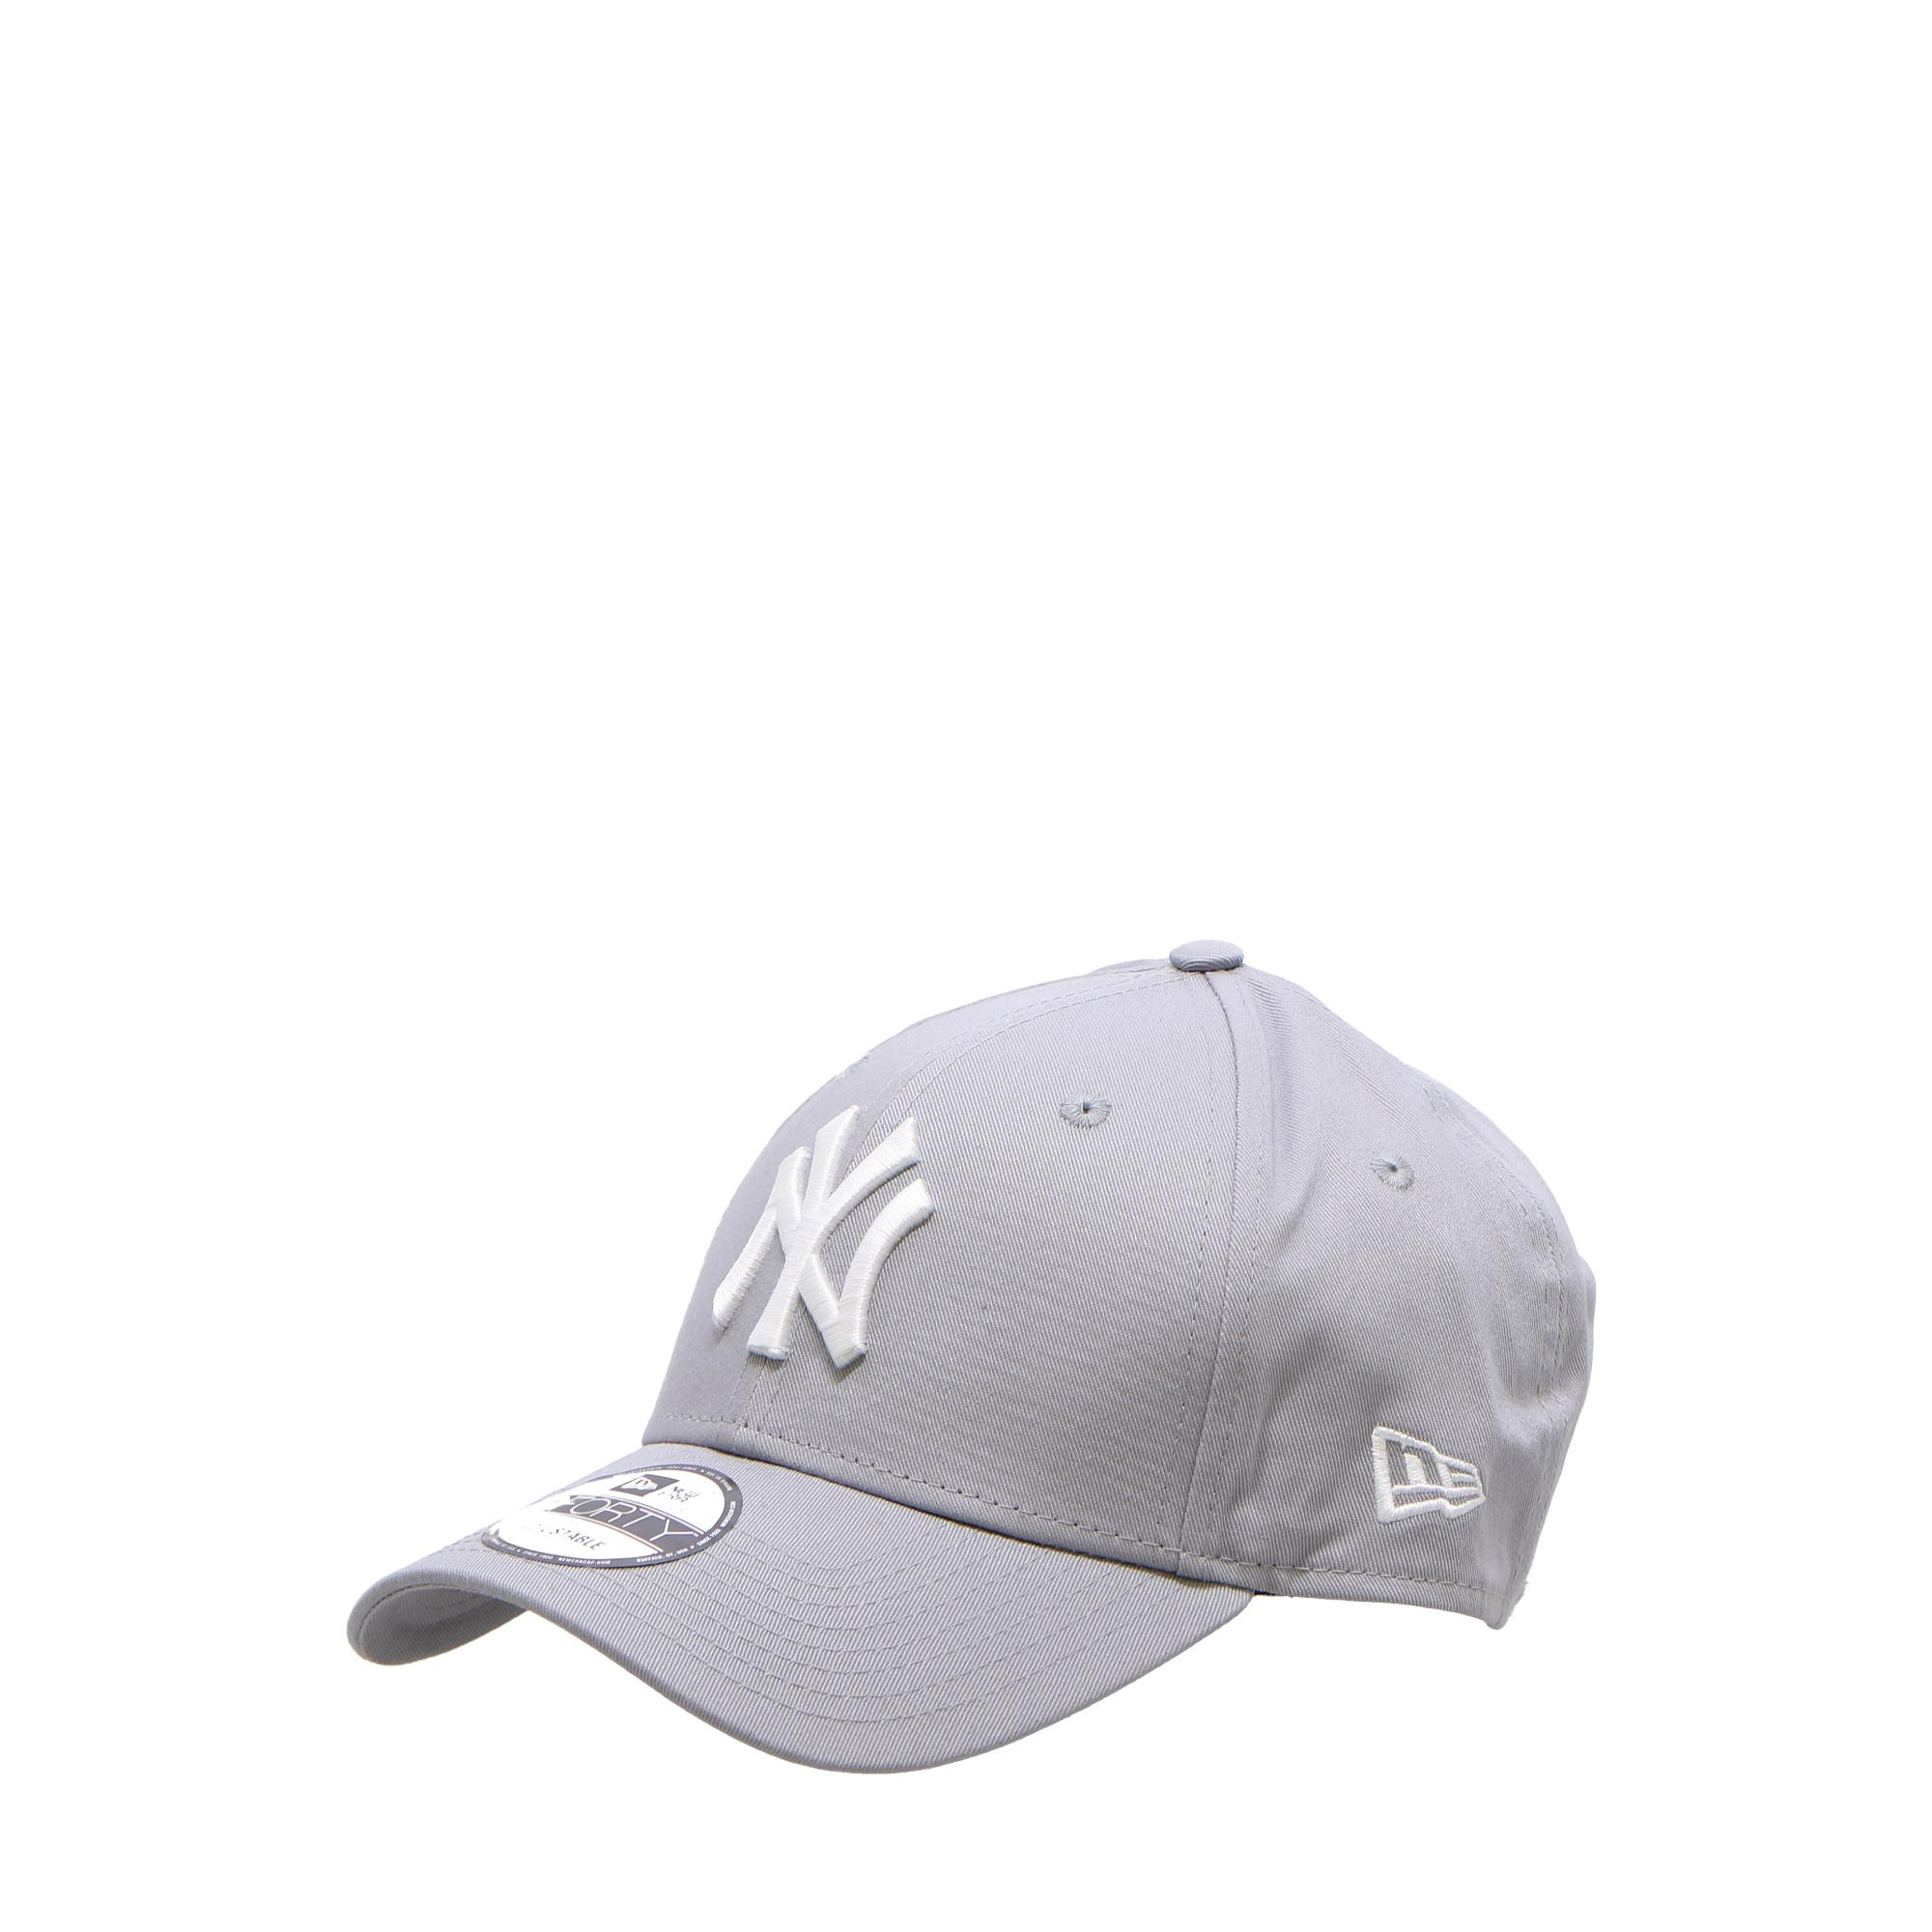 New Era 940 League Basic Ny Yankees Gray white